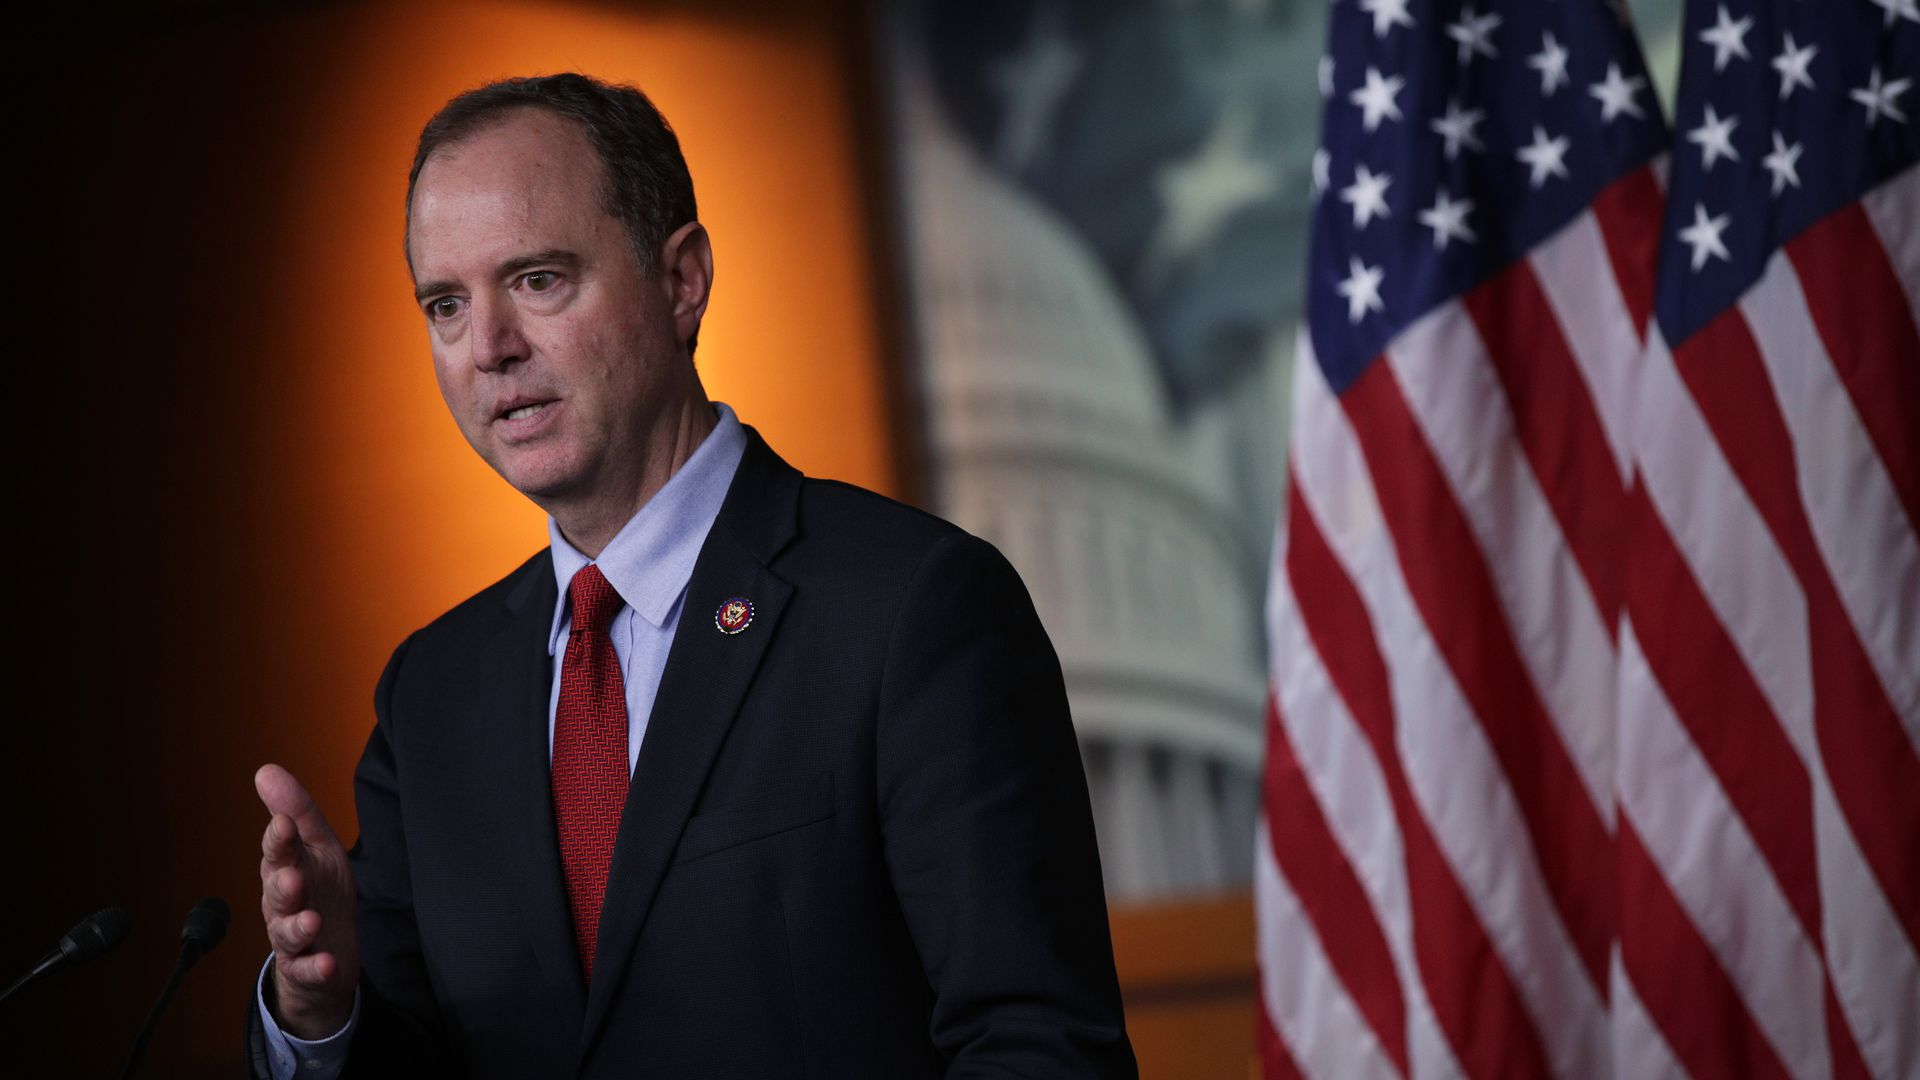 House Republicans' effort to censure Adam Schiff fails